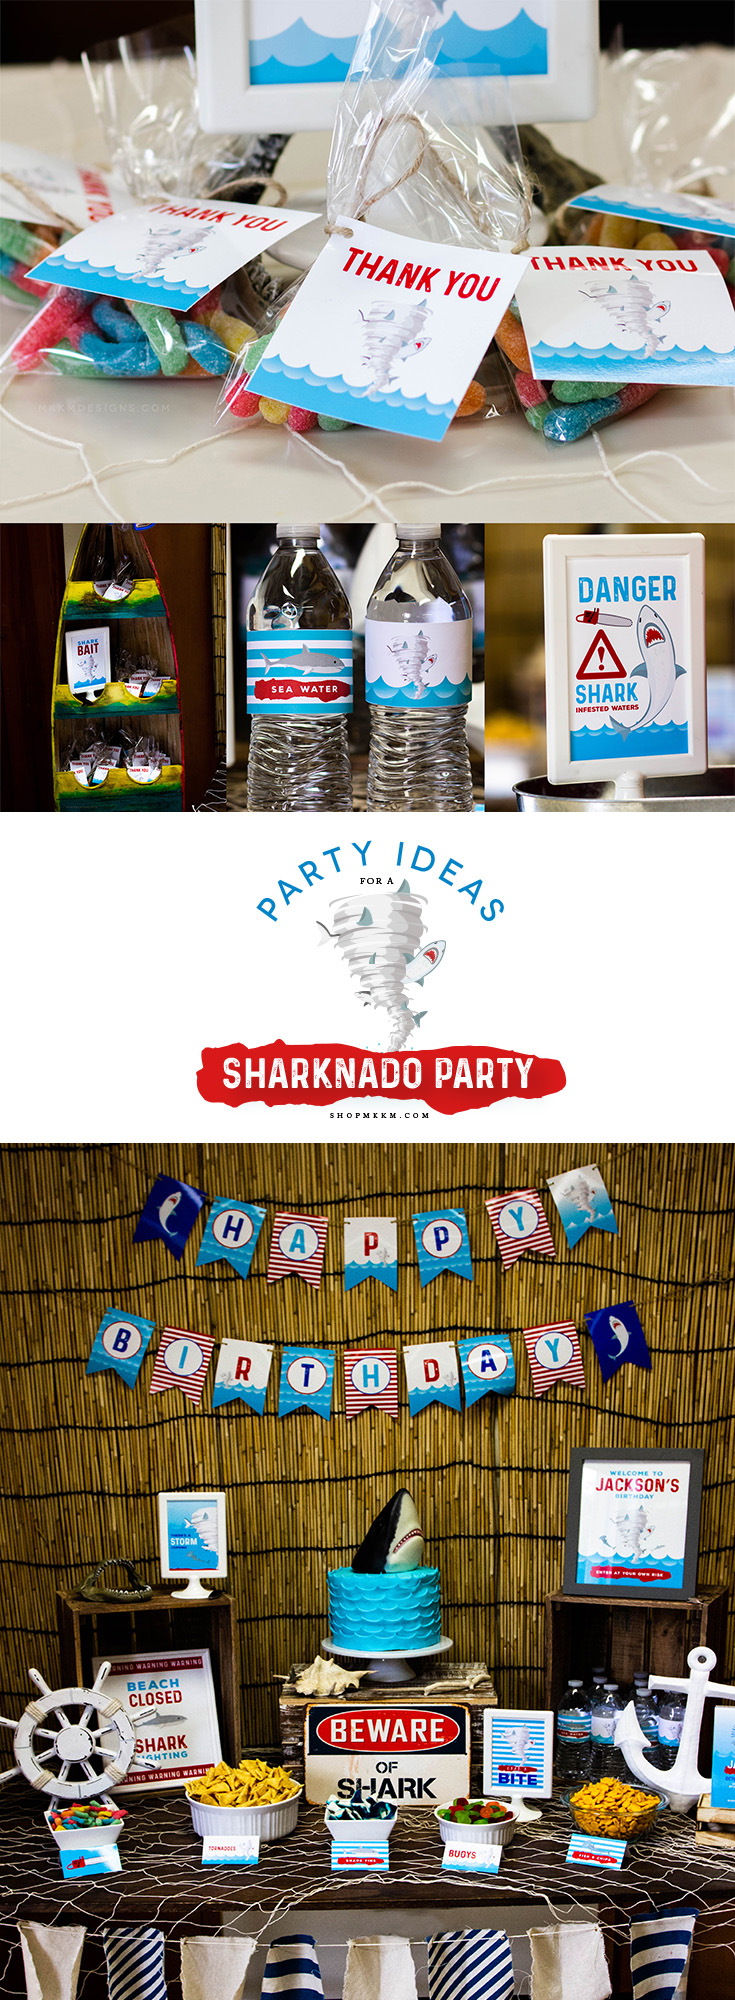 Sharknado Birthday Party Recap on the blog! Grab some free printables and party inspiration for a sharknado, or shark themed birthday party. // mkkmdesigns